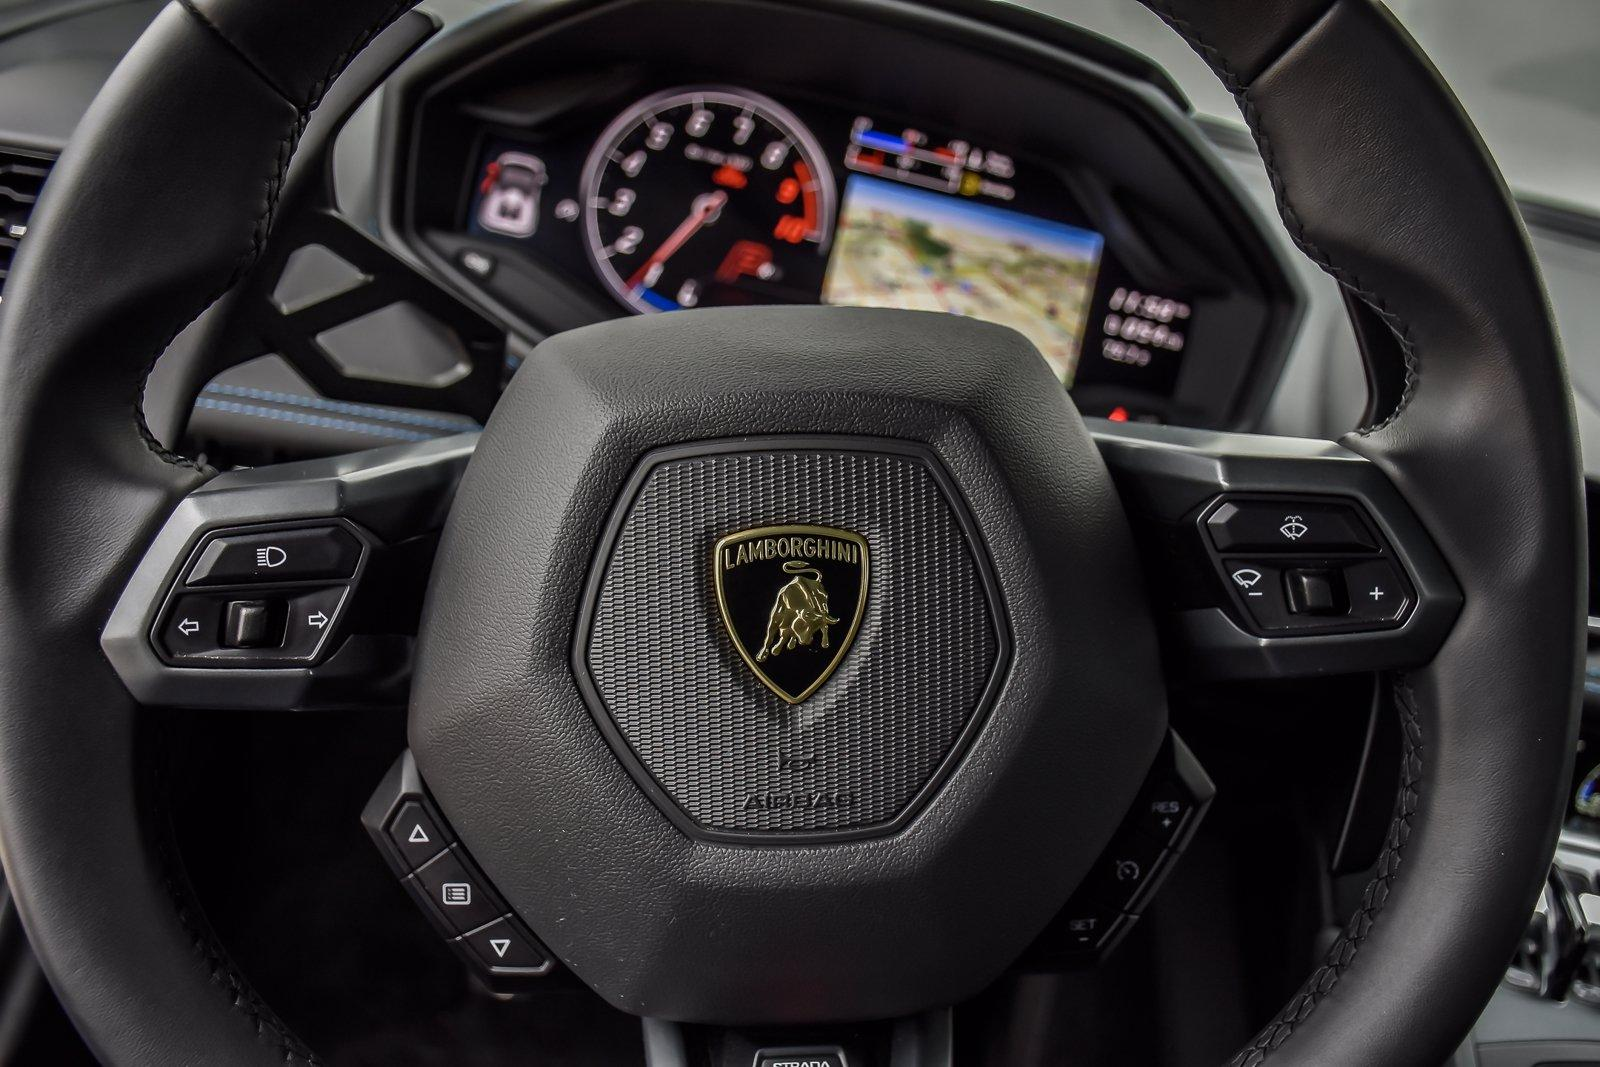 Used 2018 Lamborghini Huracan LP 580-2 Spyder With Navigation | Downers Grove, IL